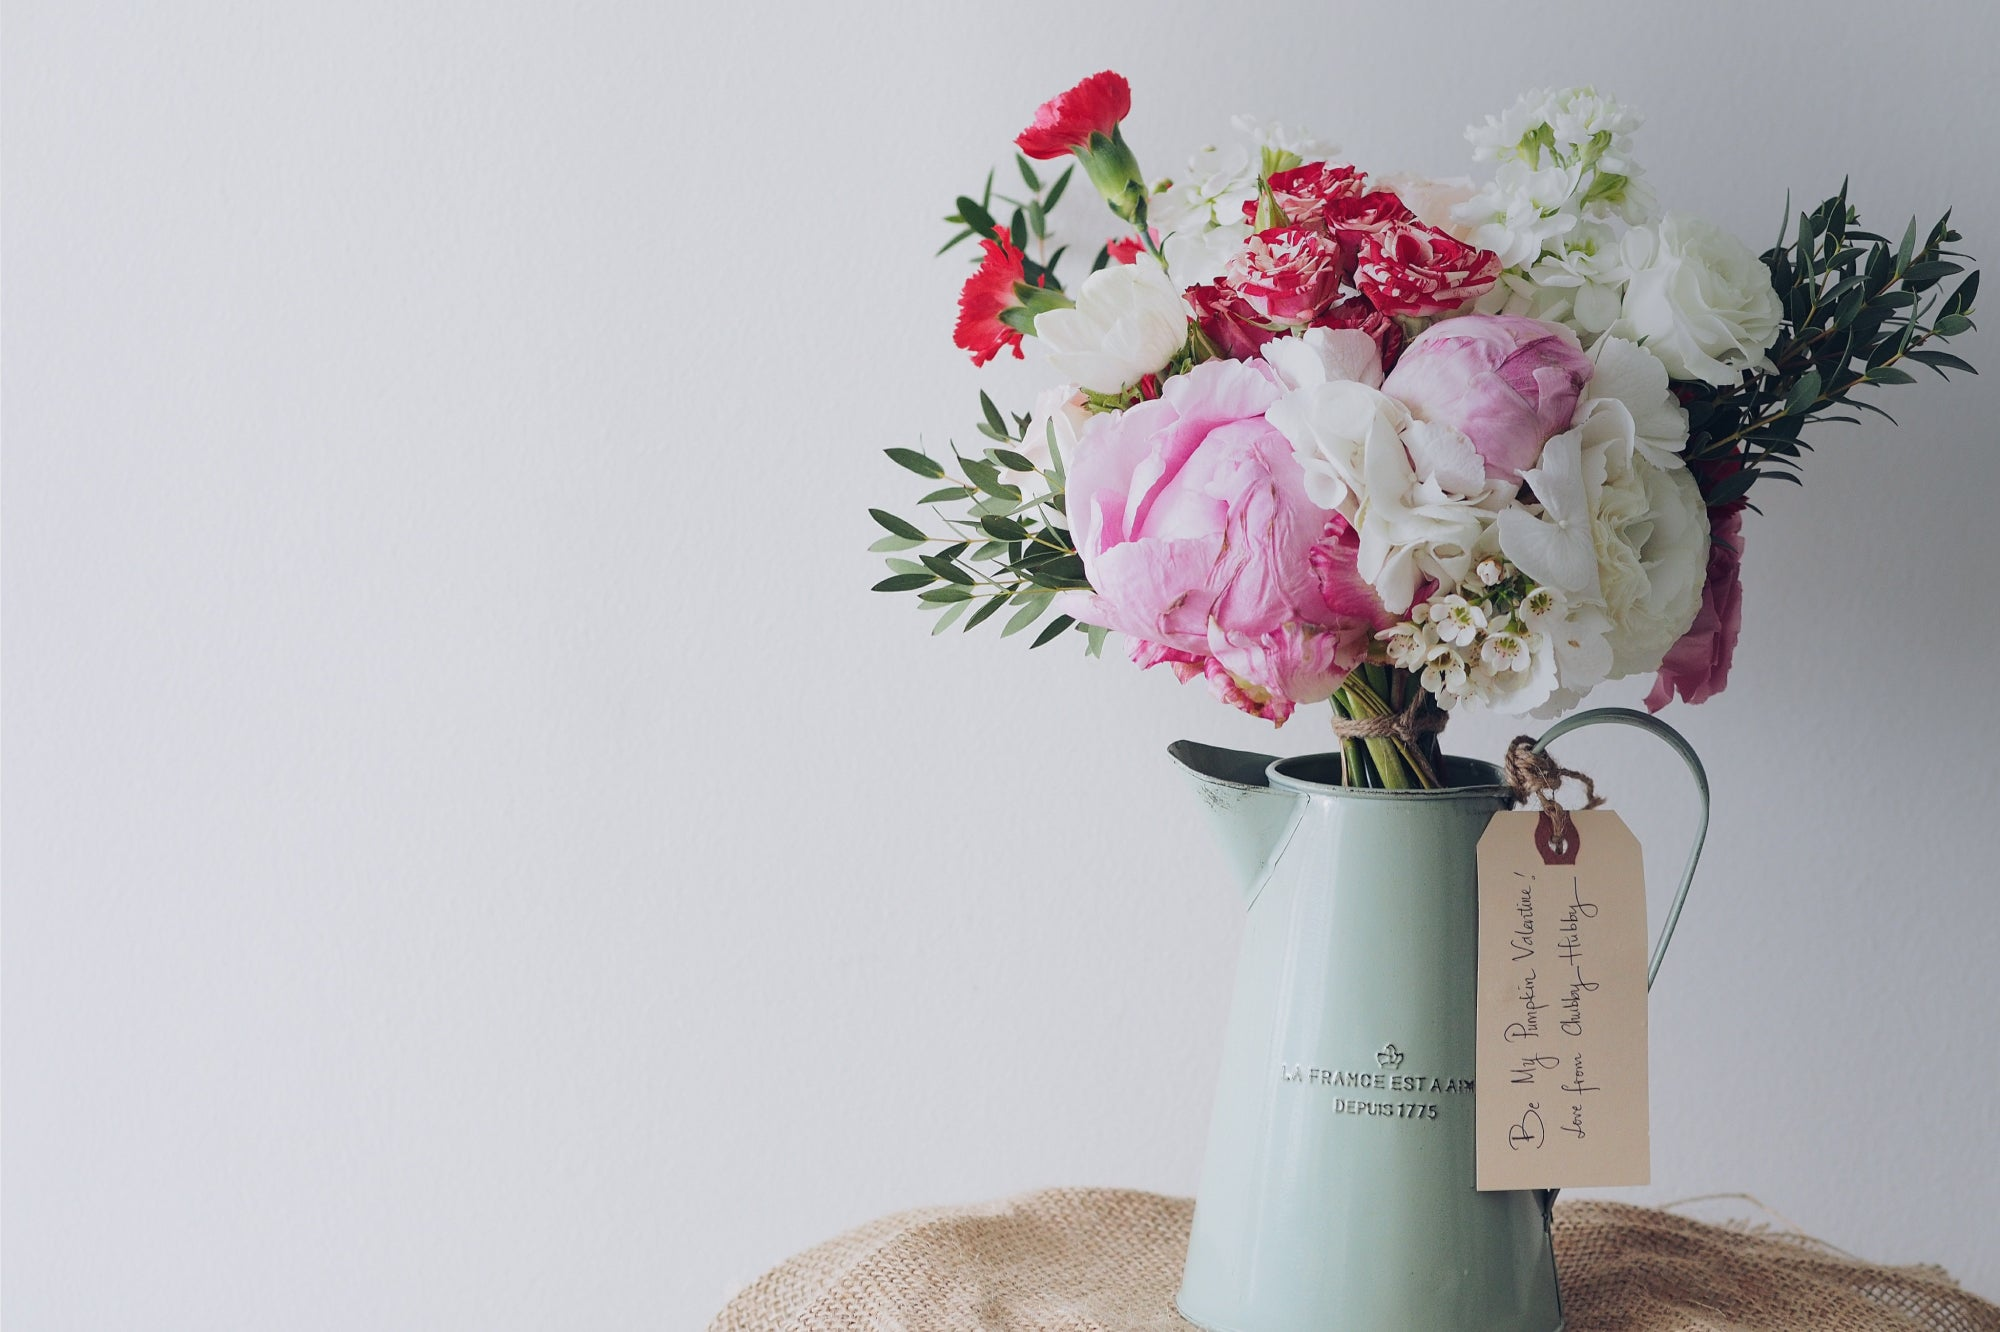 How to send flowers to someone? A cute vase with a colorful bouquet and a love note | Talsam, Smart Jewelry